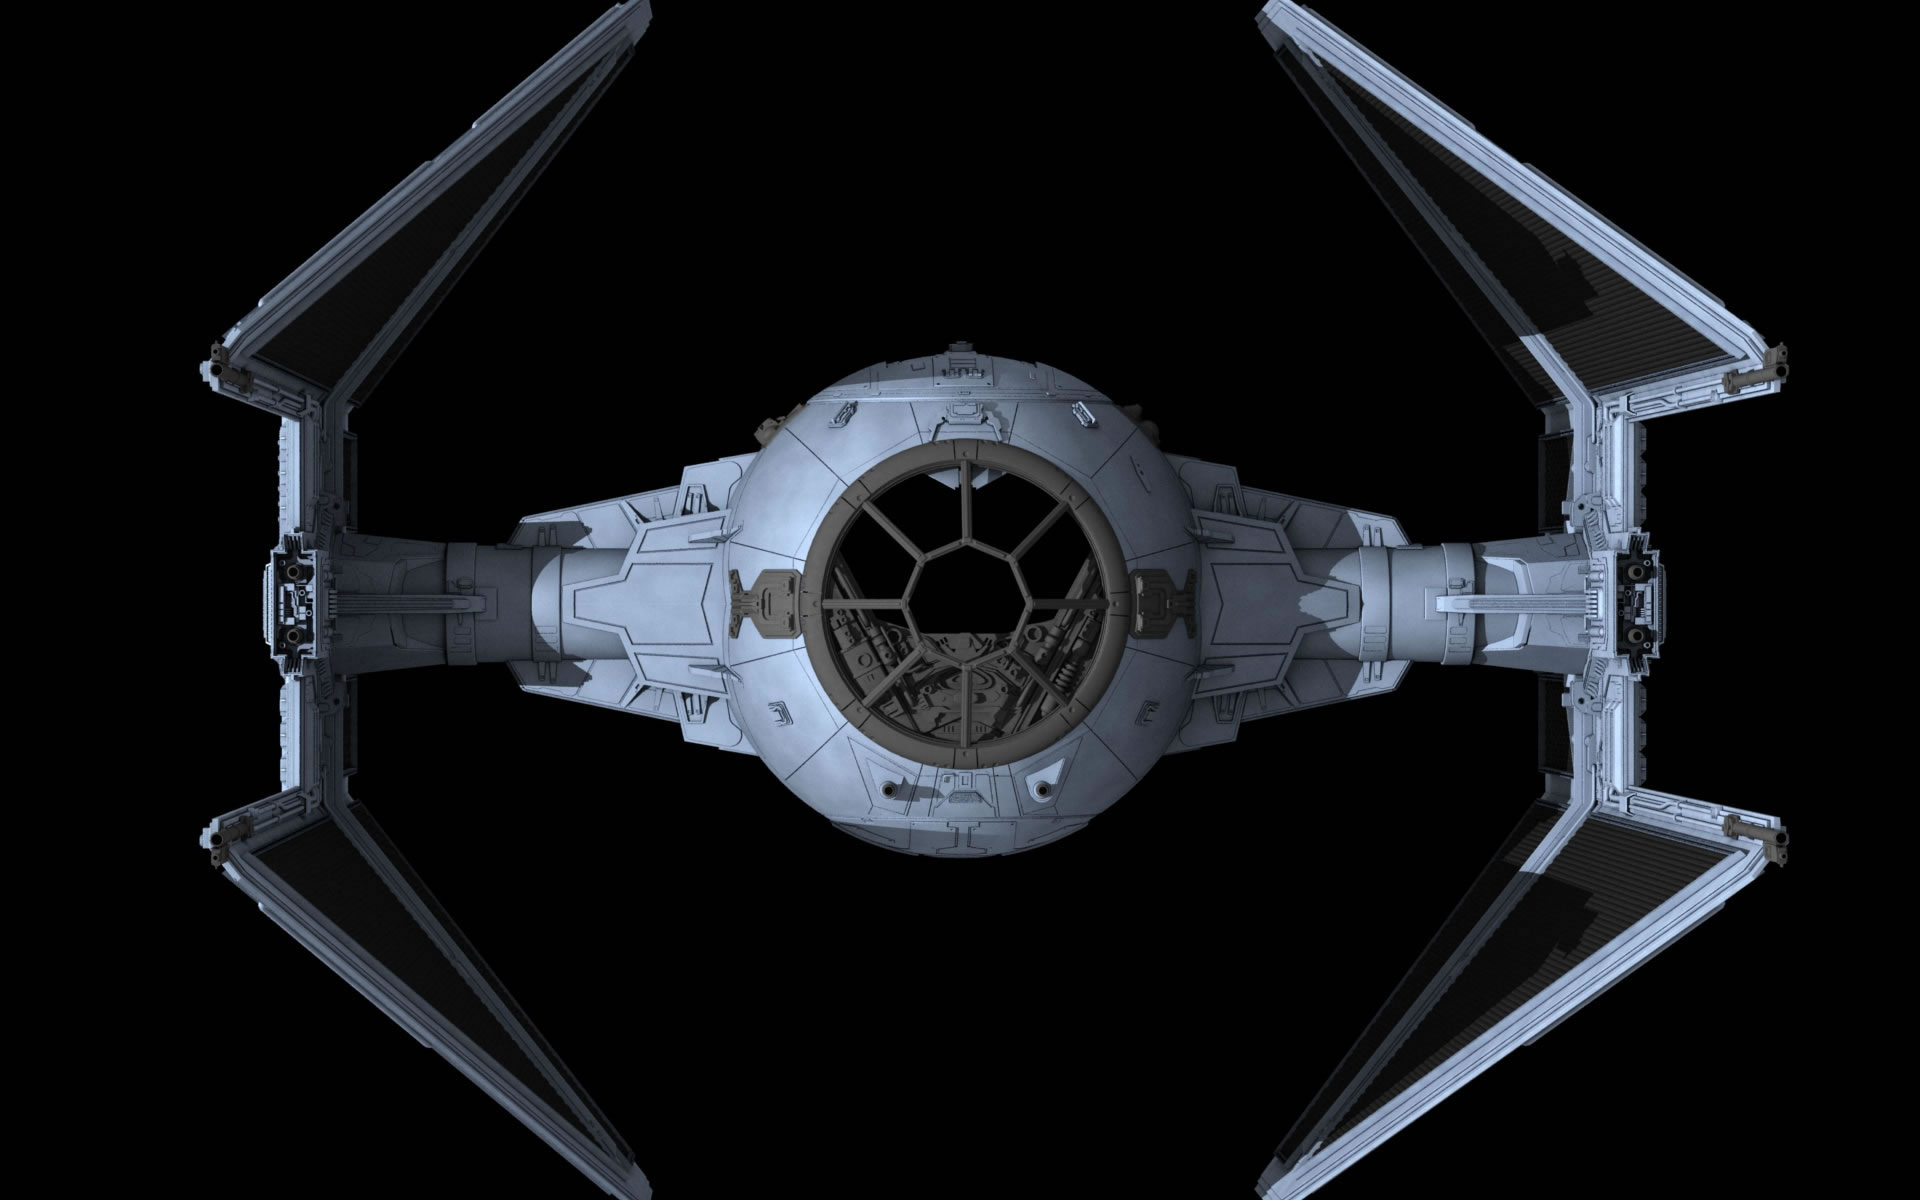 Nave de Combate Star Wars Tie Fighter